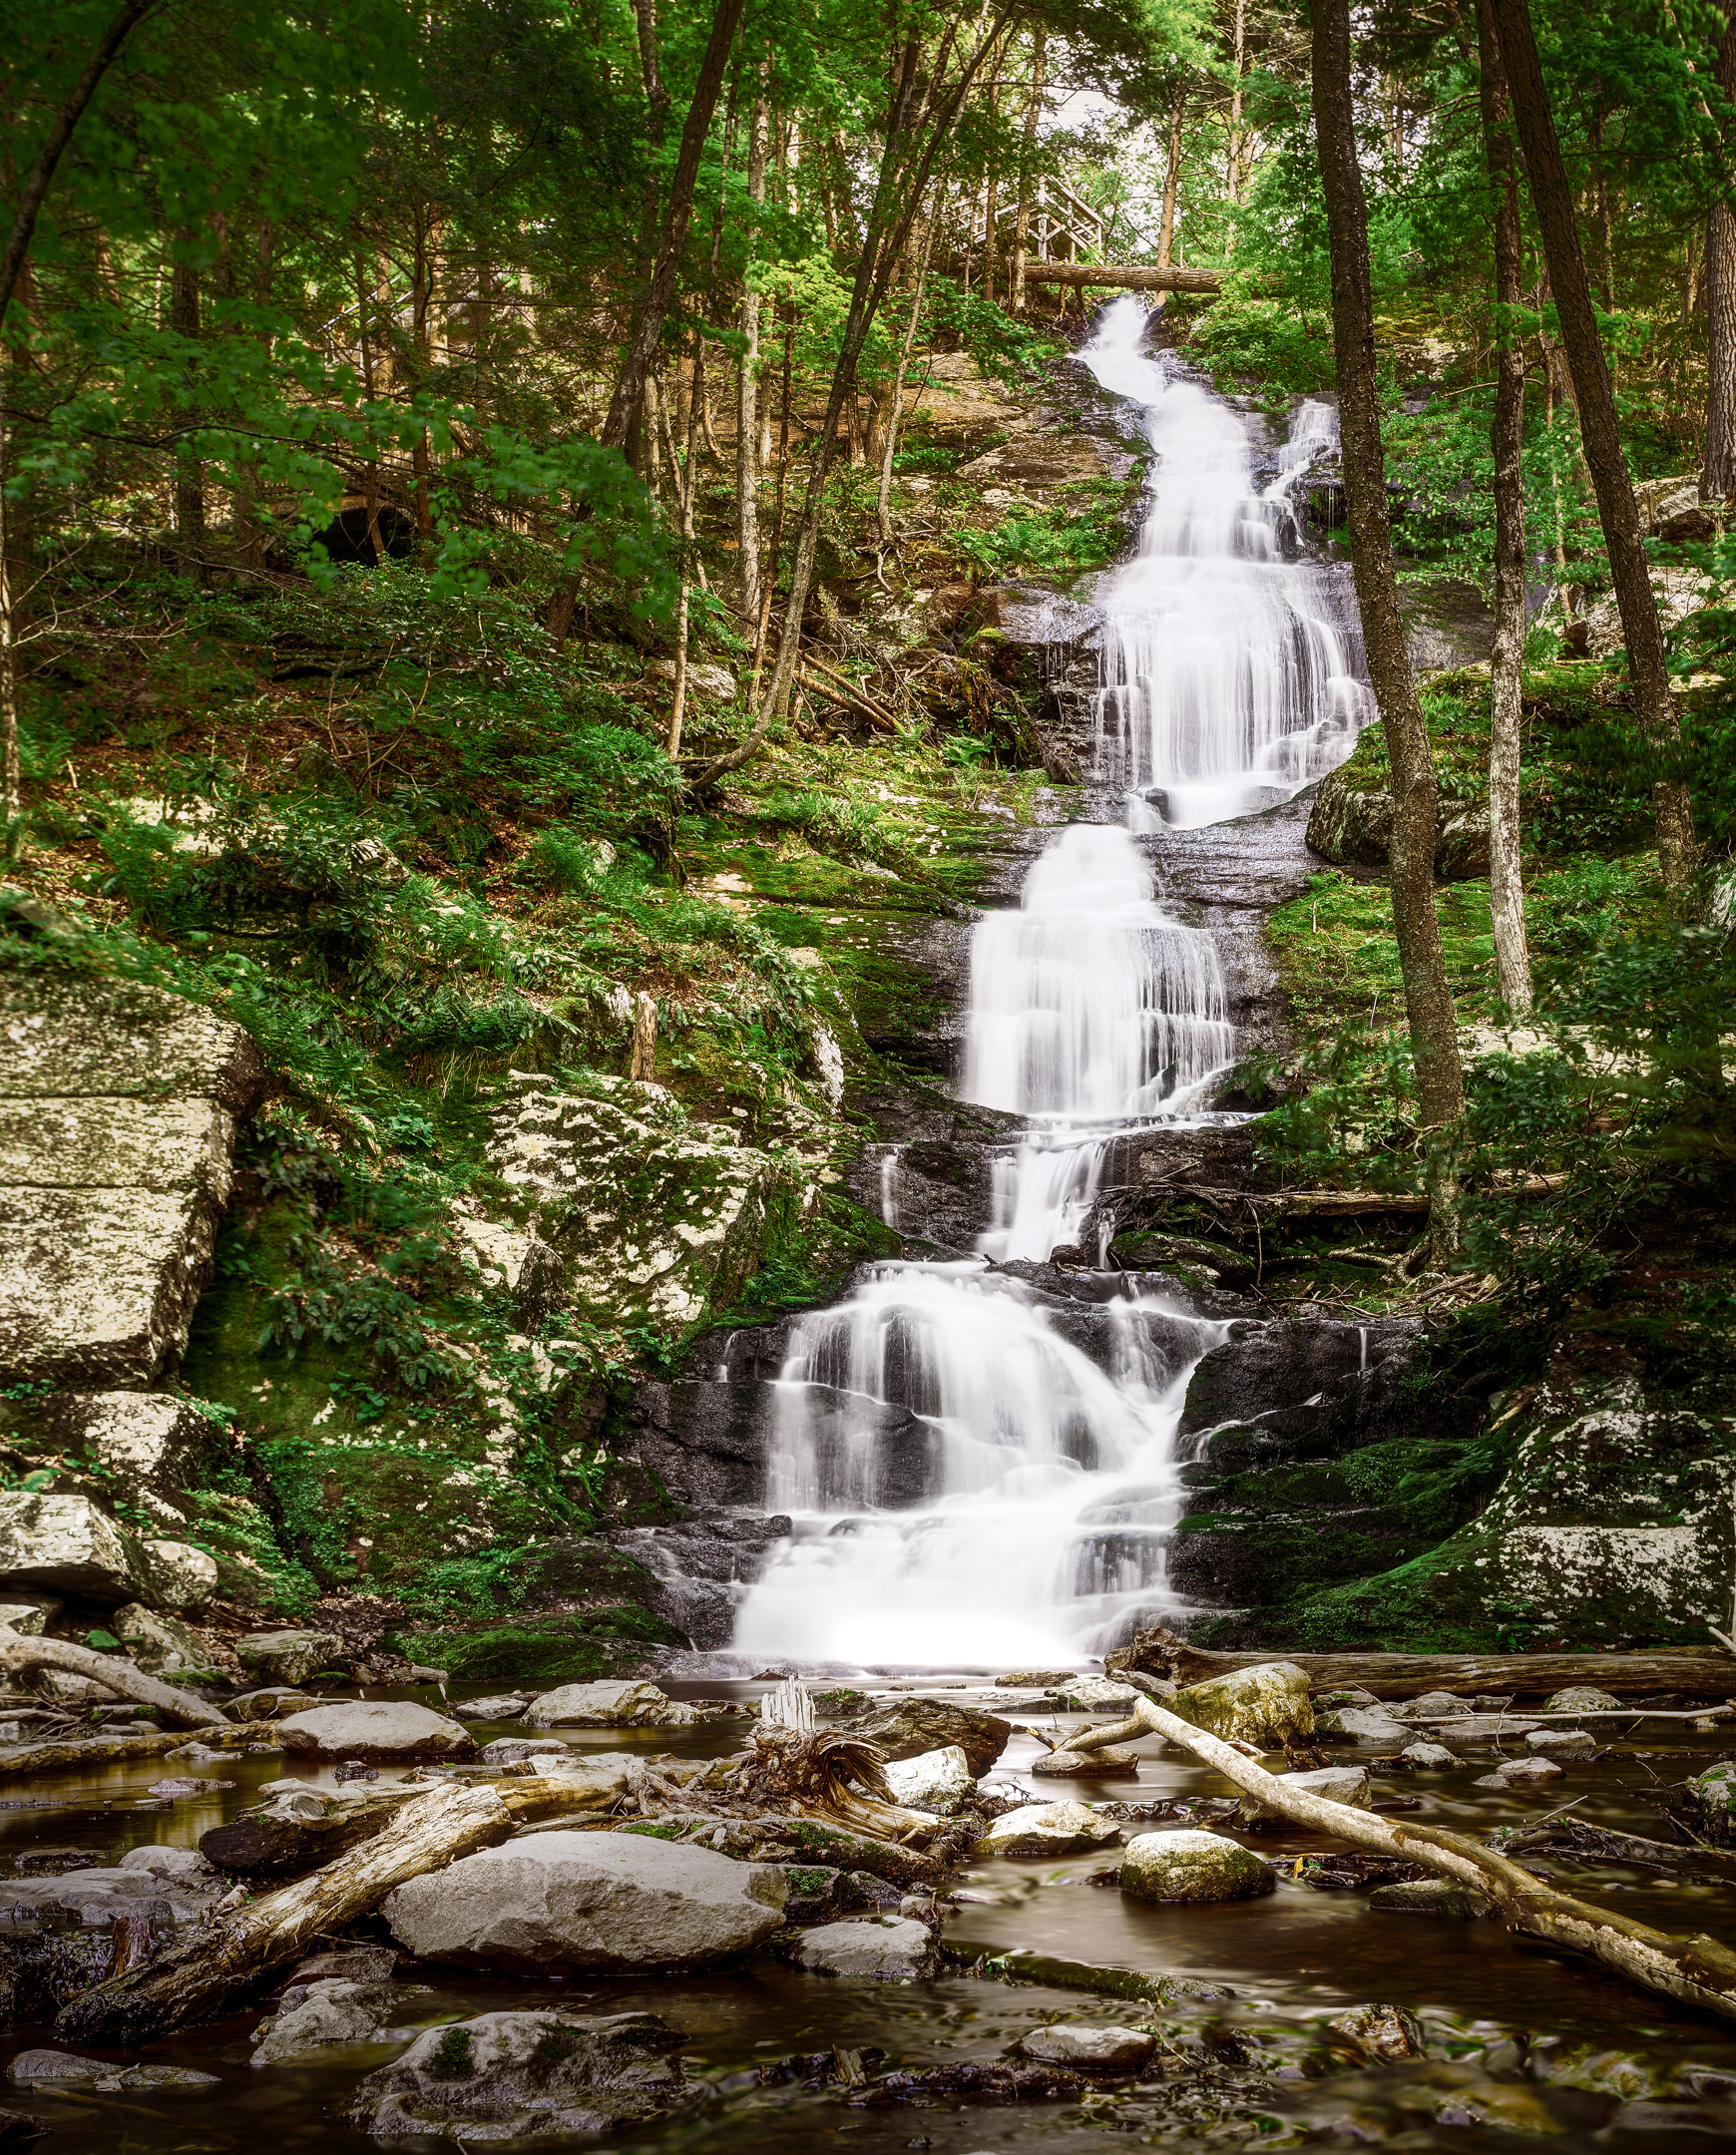 From Waterfalls -